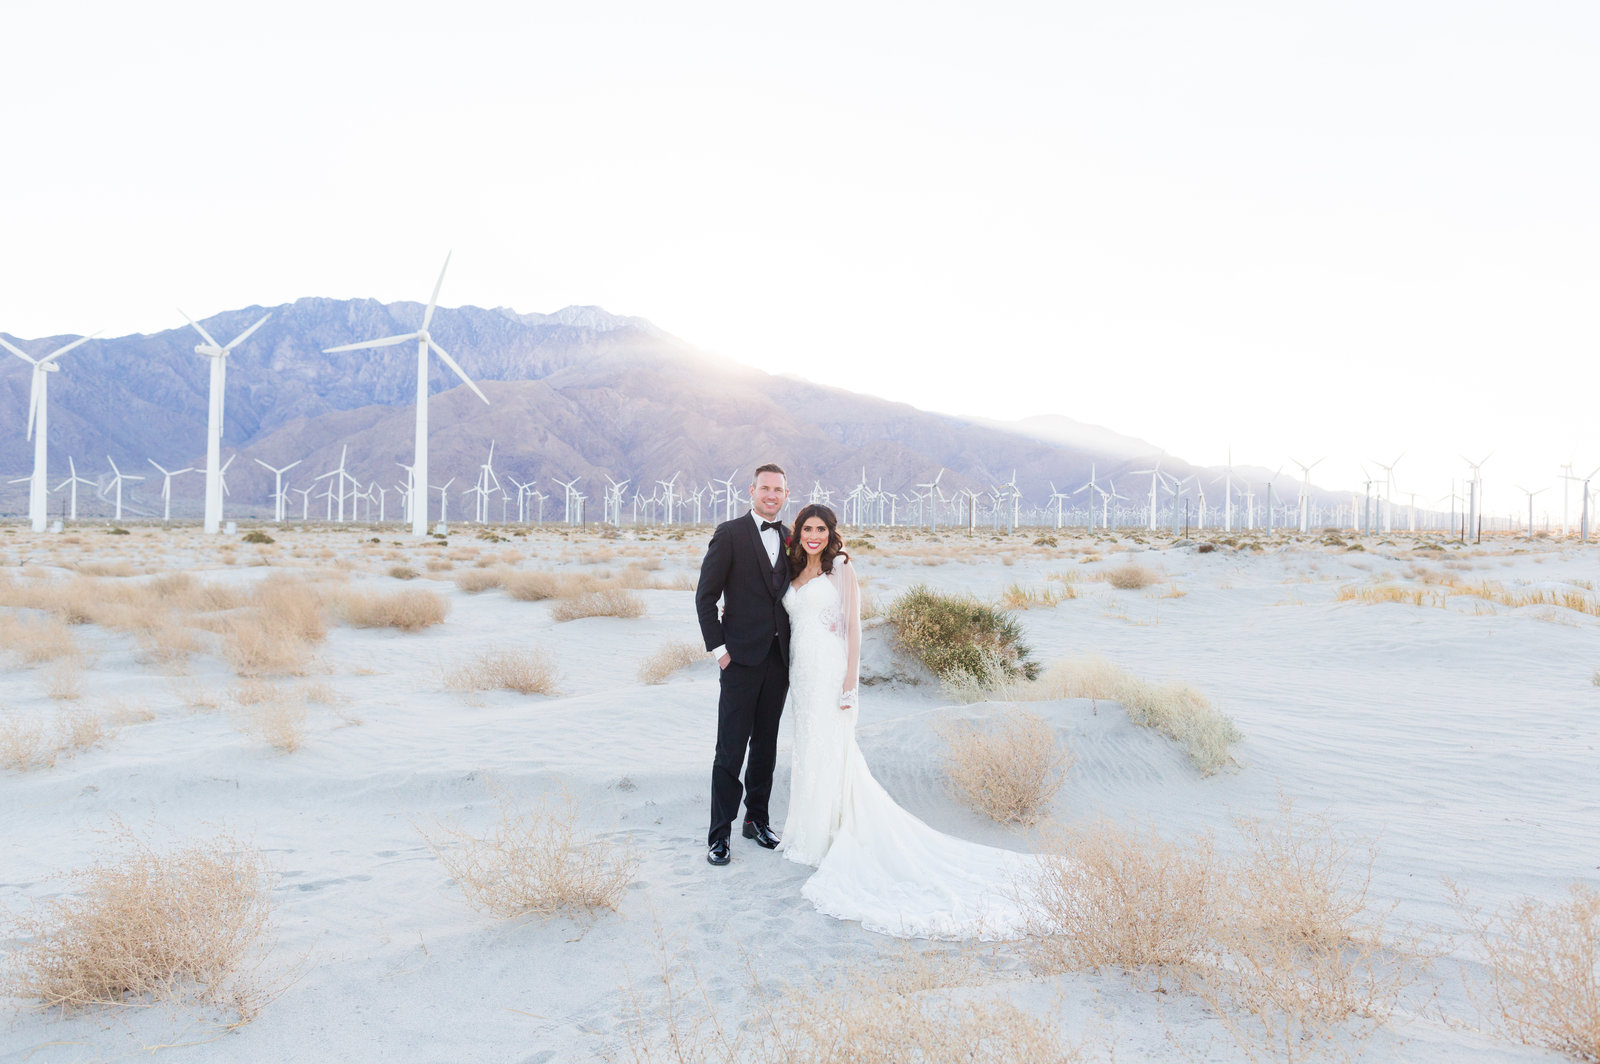 Palm Springs Wedding & Lifestyle Photographers , serving Southern California & beyond.